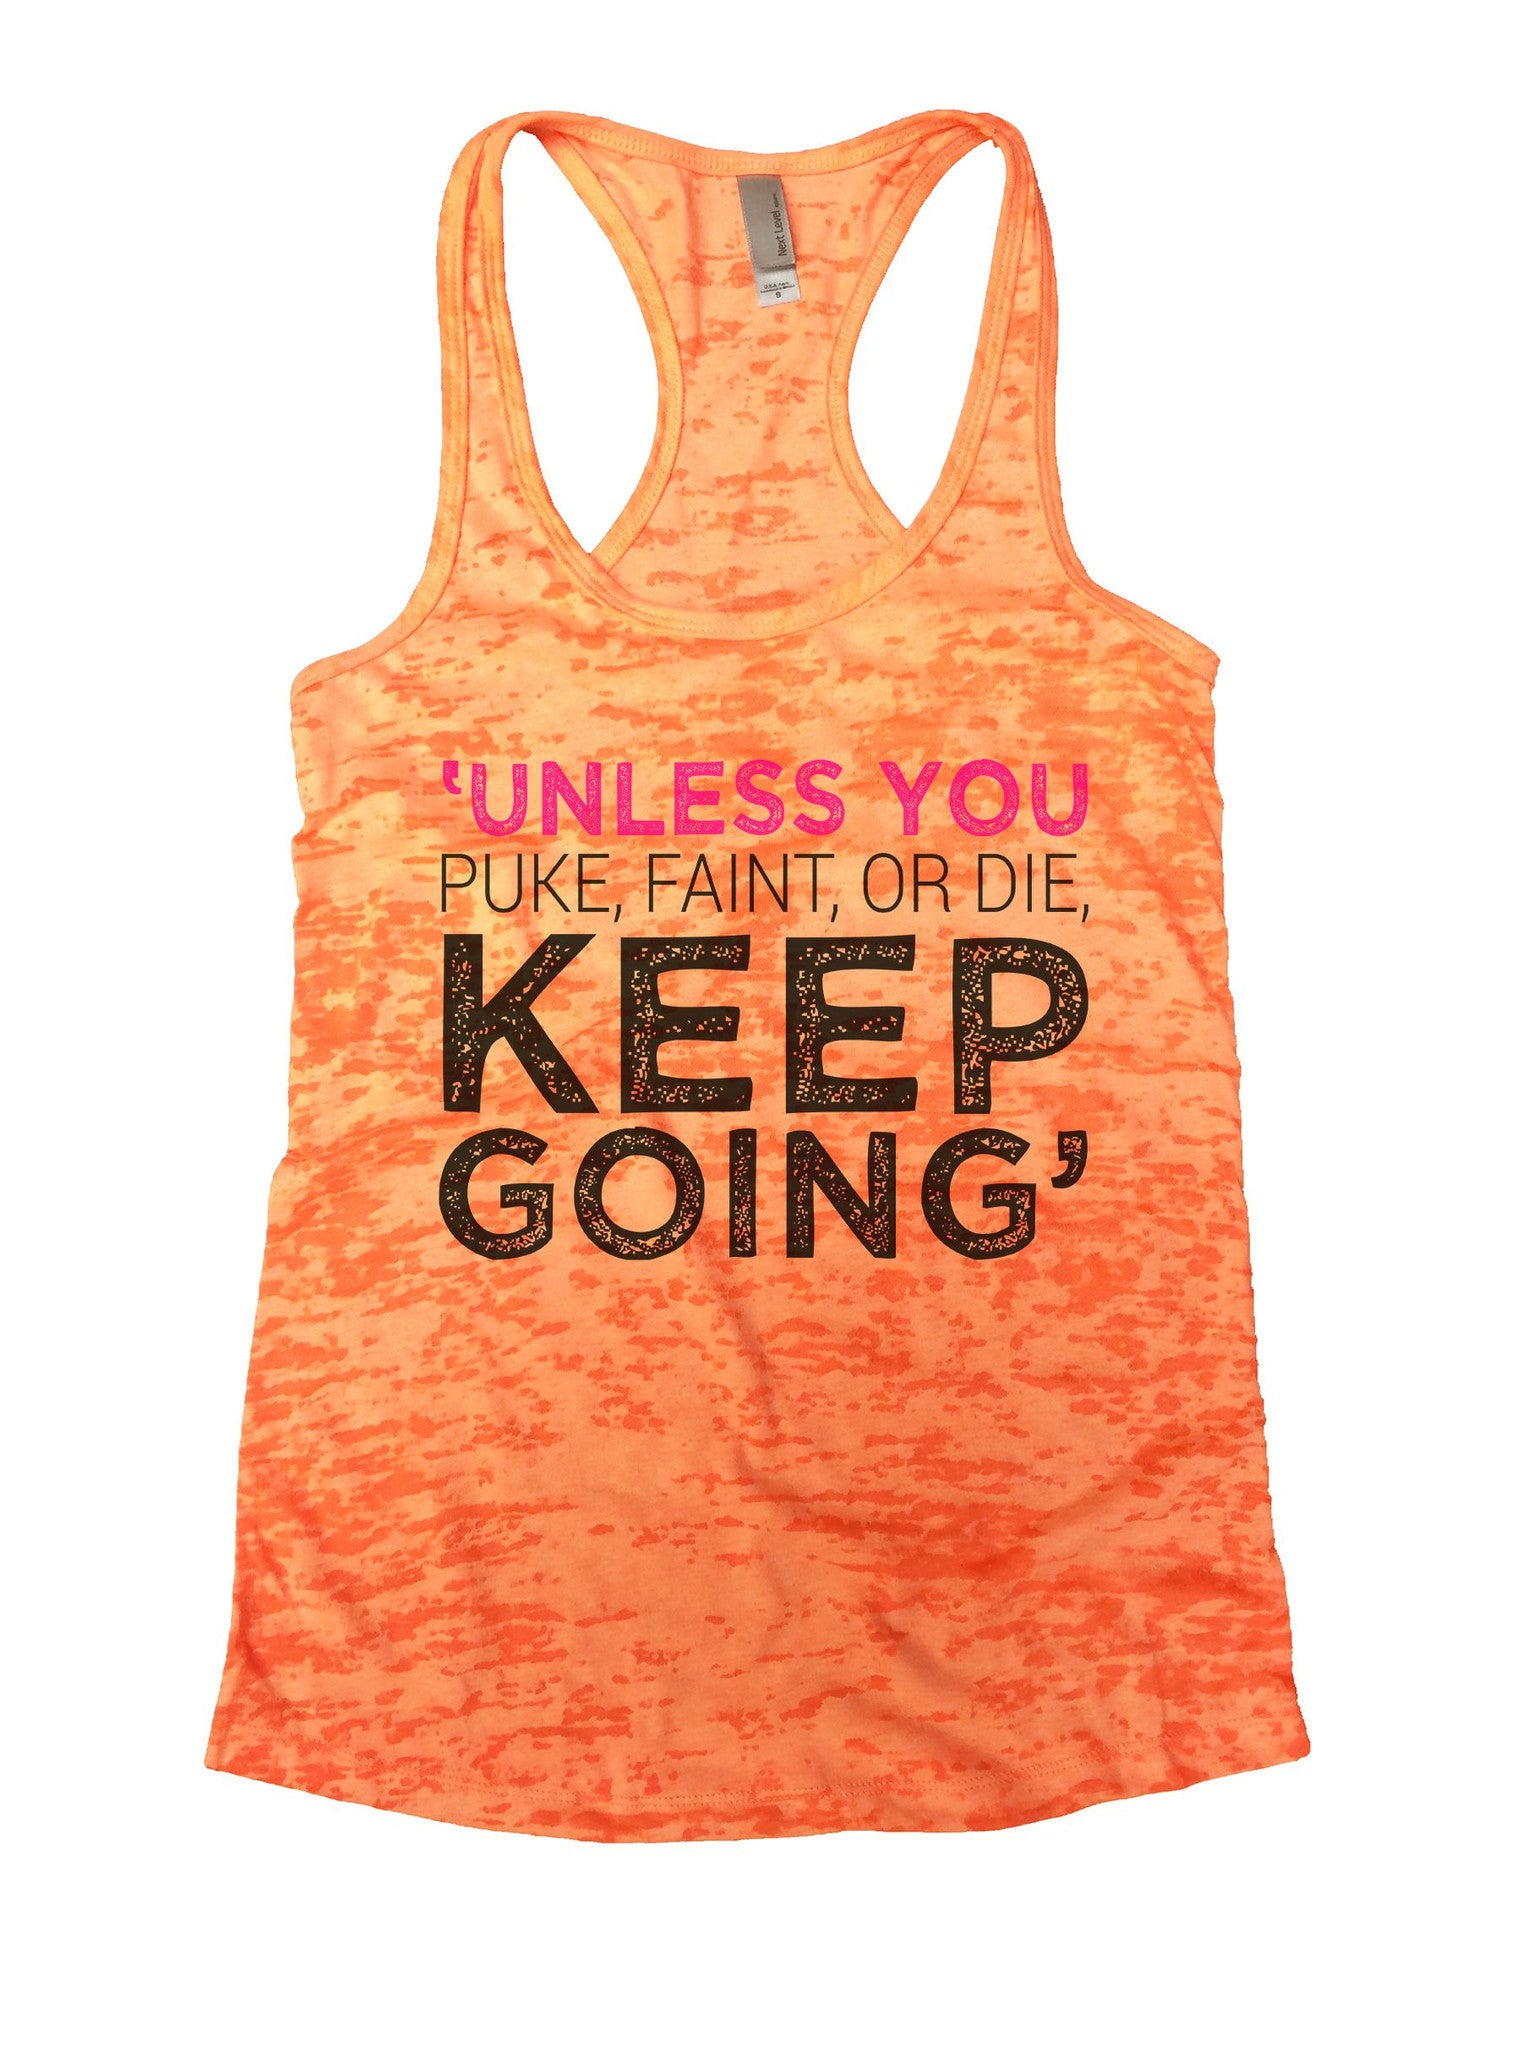 Unless You Puke, Faint, Or Die. Keep Going' Burnout Tank Top By BurnoutTankTops.com - 1104 - Funny Shirts Tank Tops Burnouts and Triblends  - 3